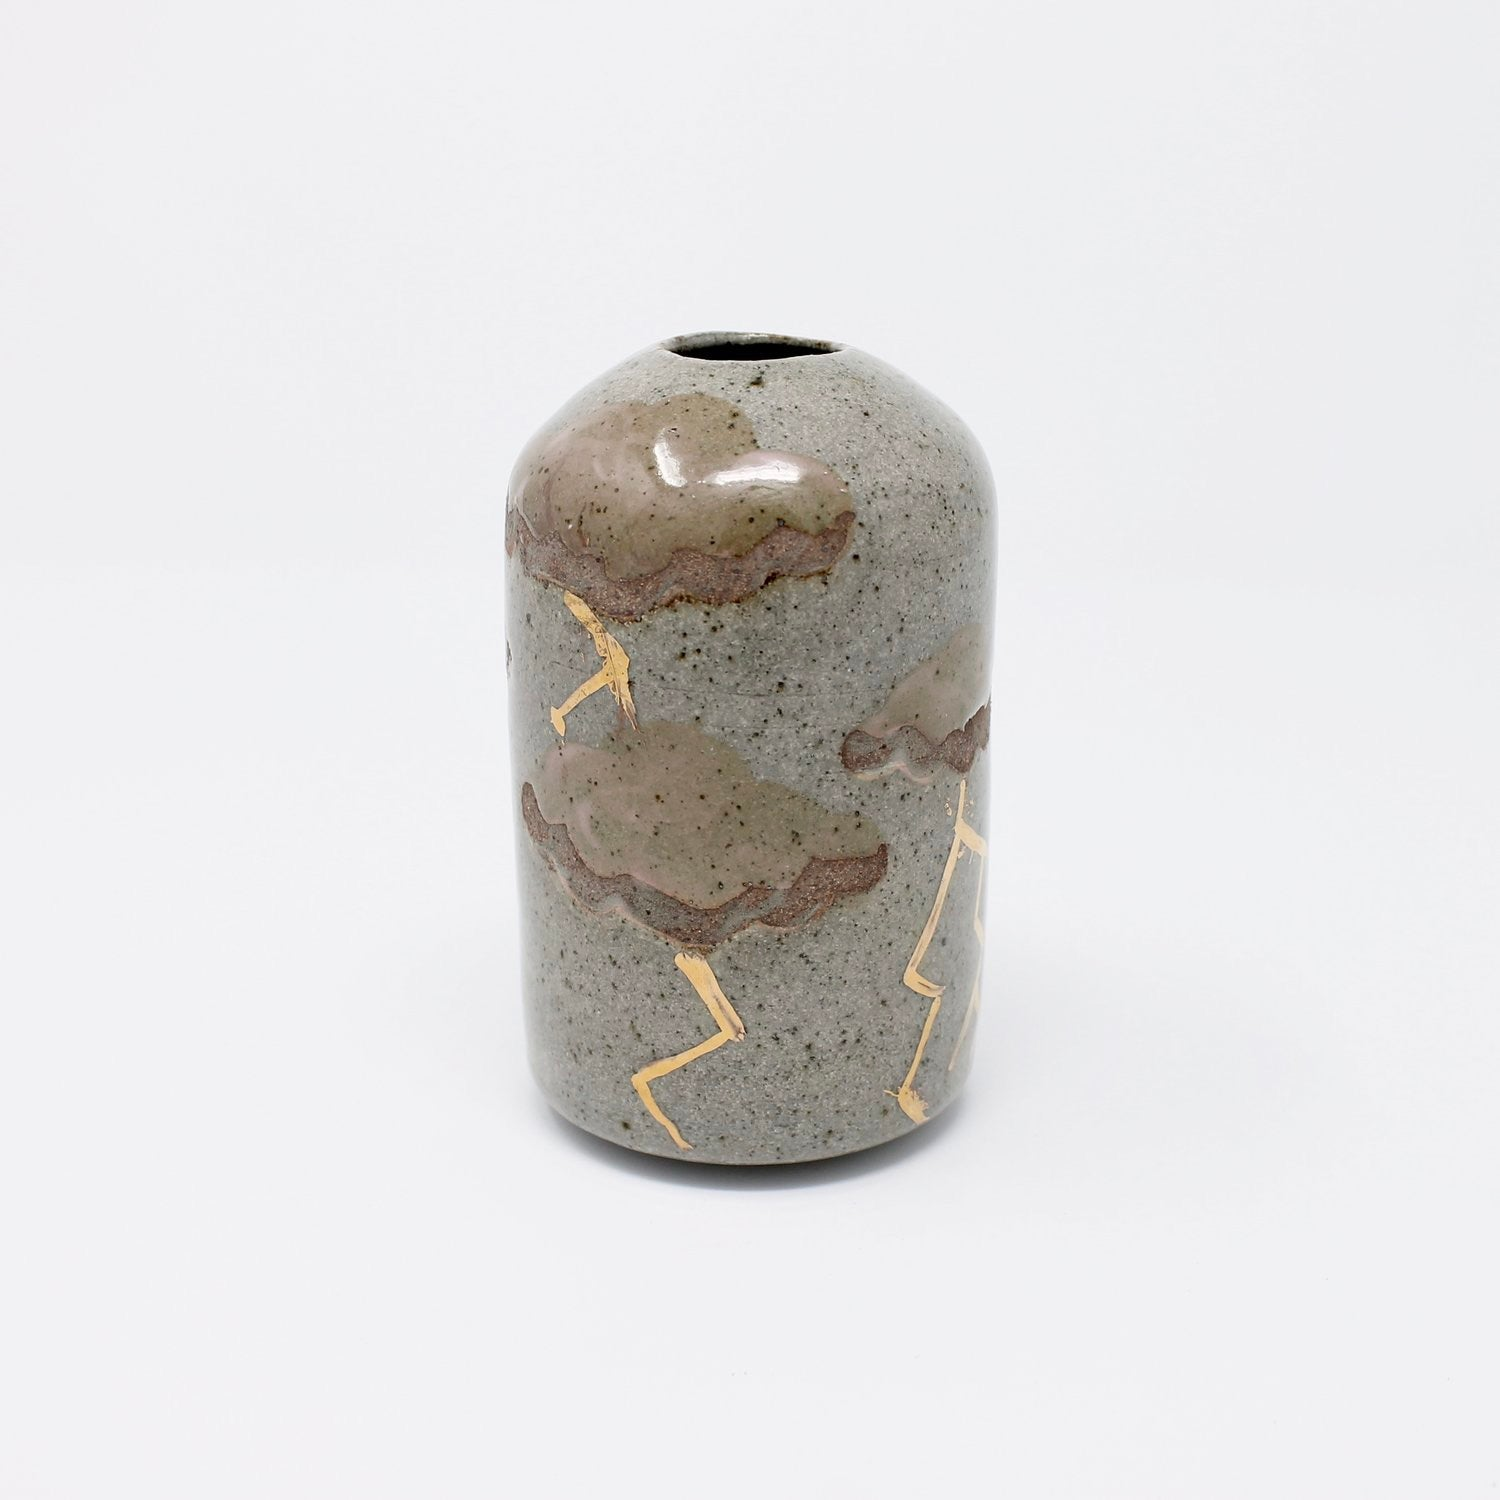 Handmade by Jessica Truelyt in Pasadena, California. Wheelthrown stoneware bud vase with speckle glaze, handpainted pink clouds, and precious metal gold luster accents.